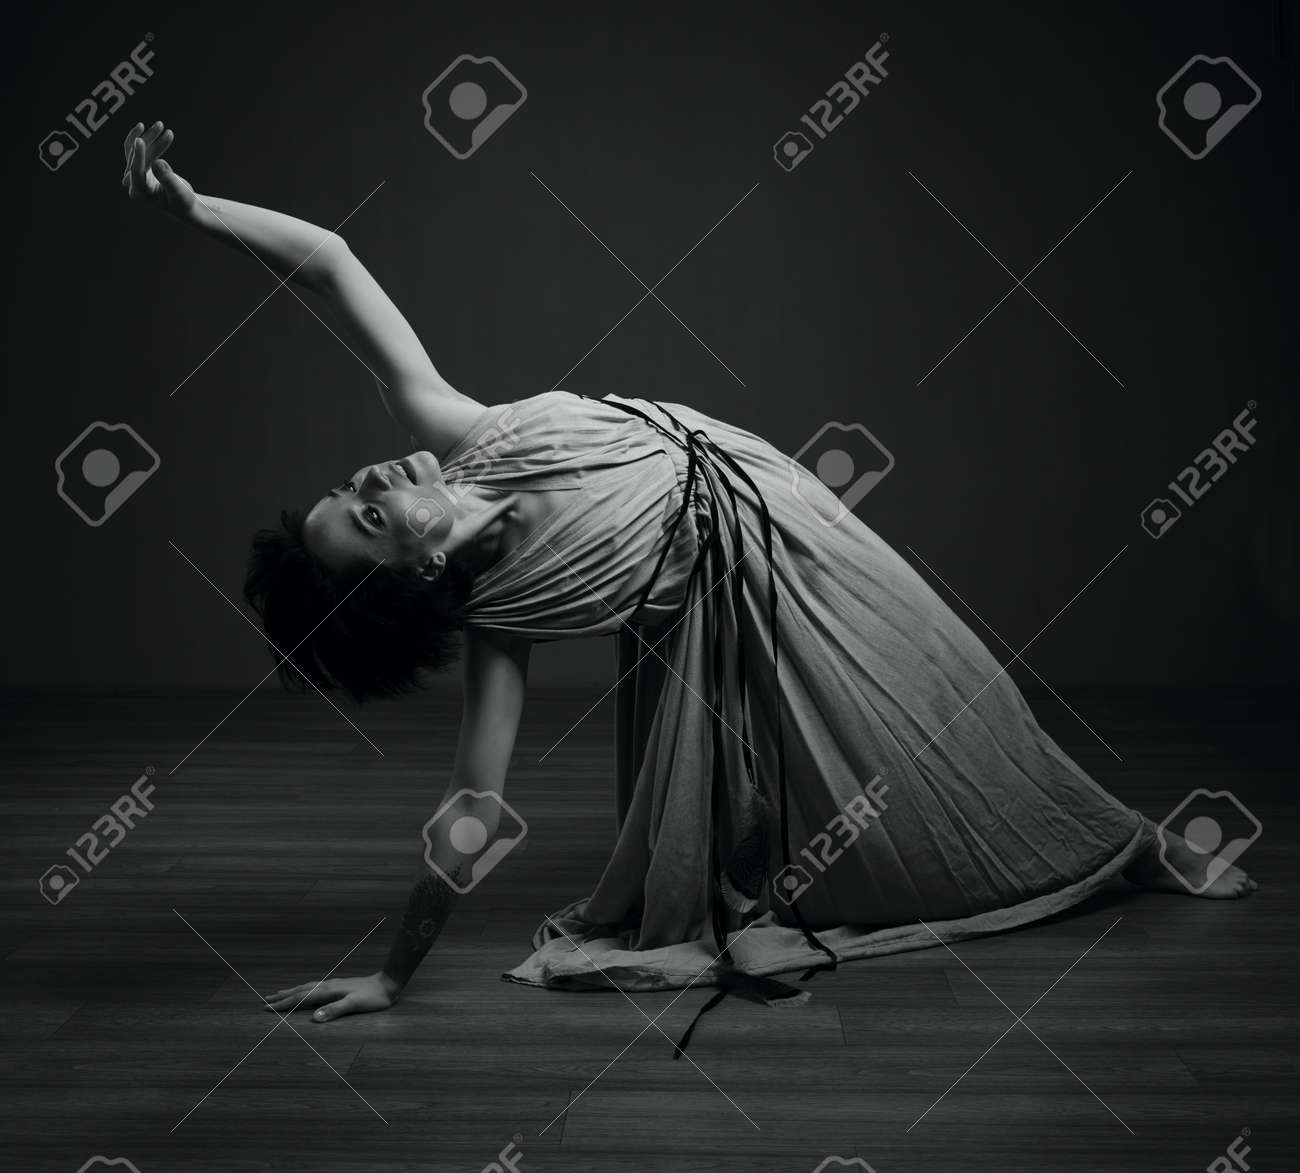 Black and white dancing woman studio portrait on a dark background